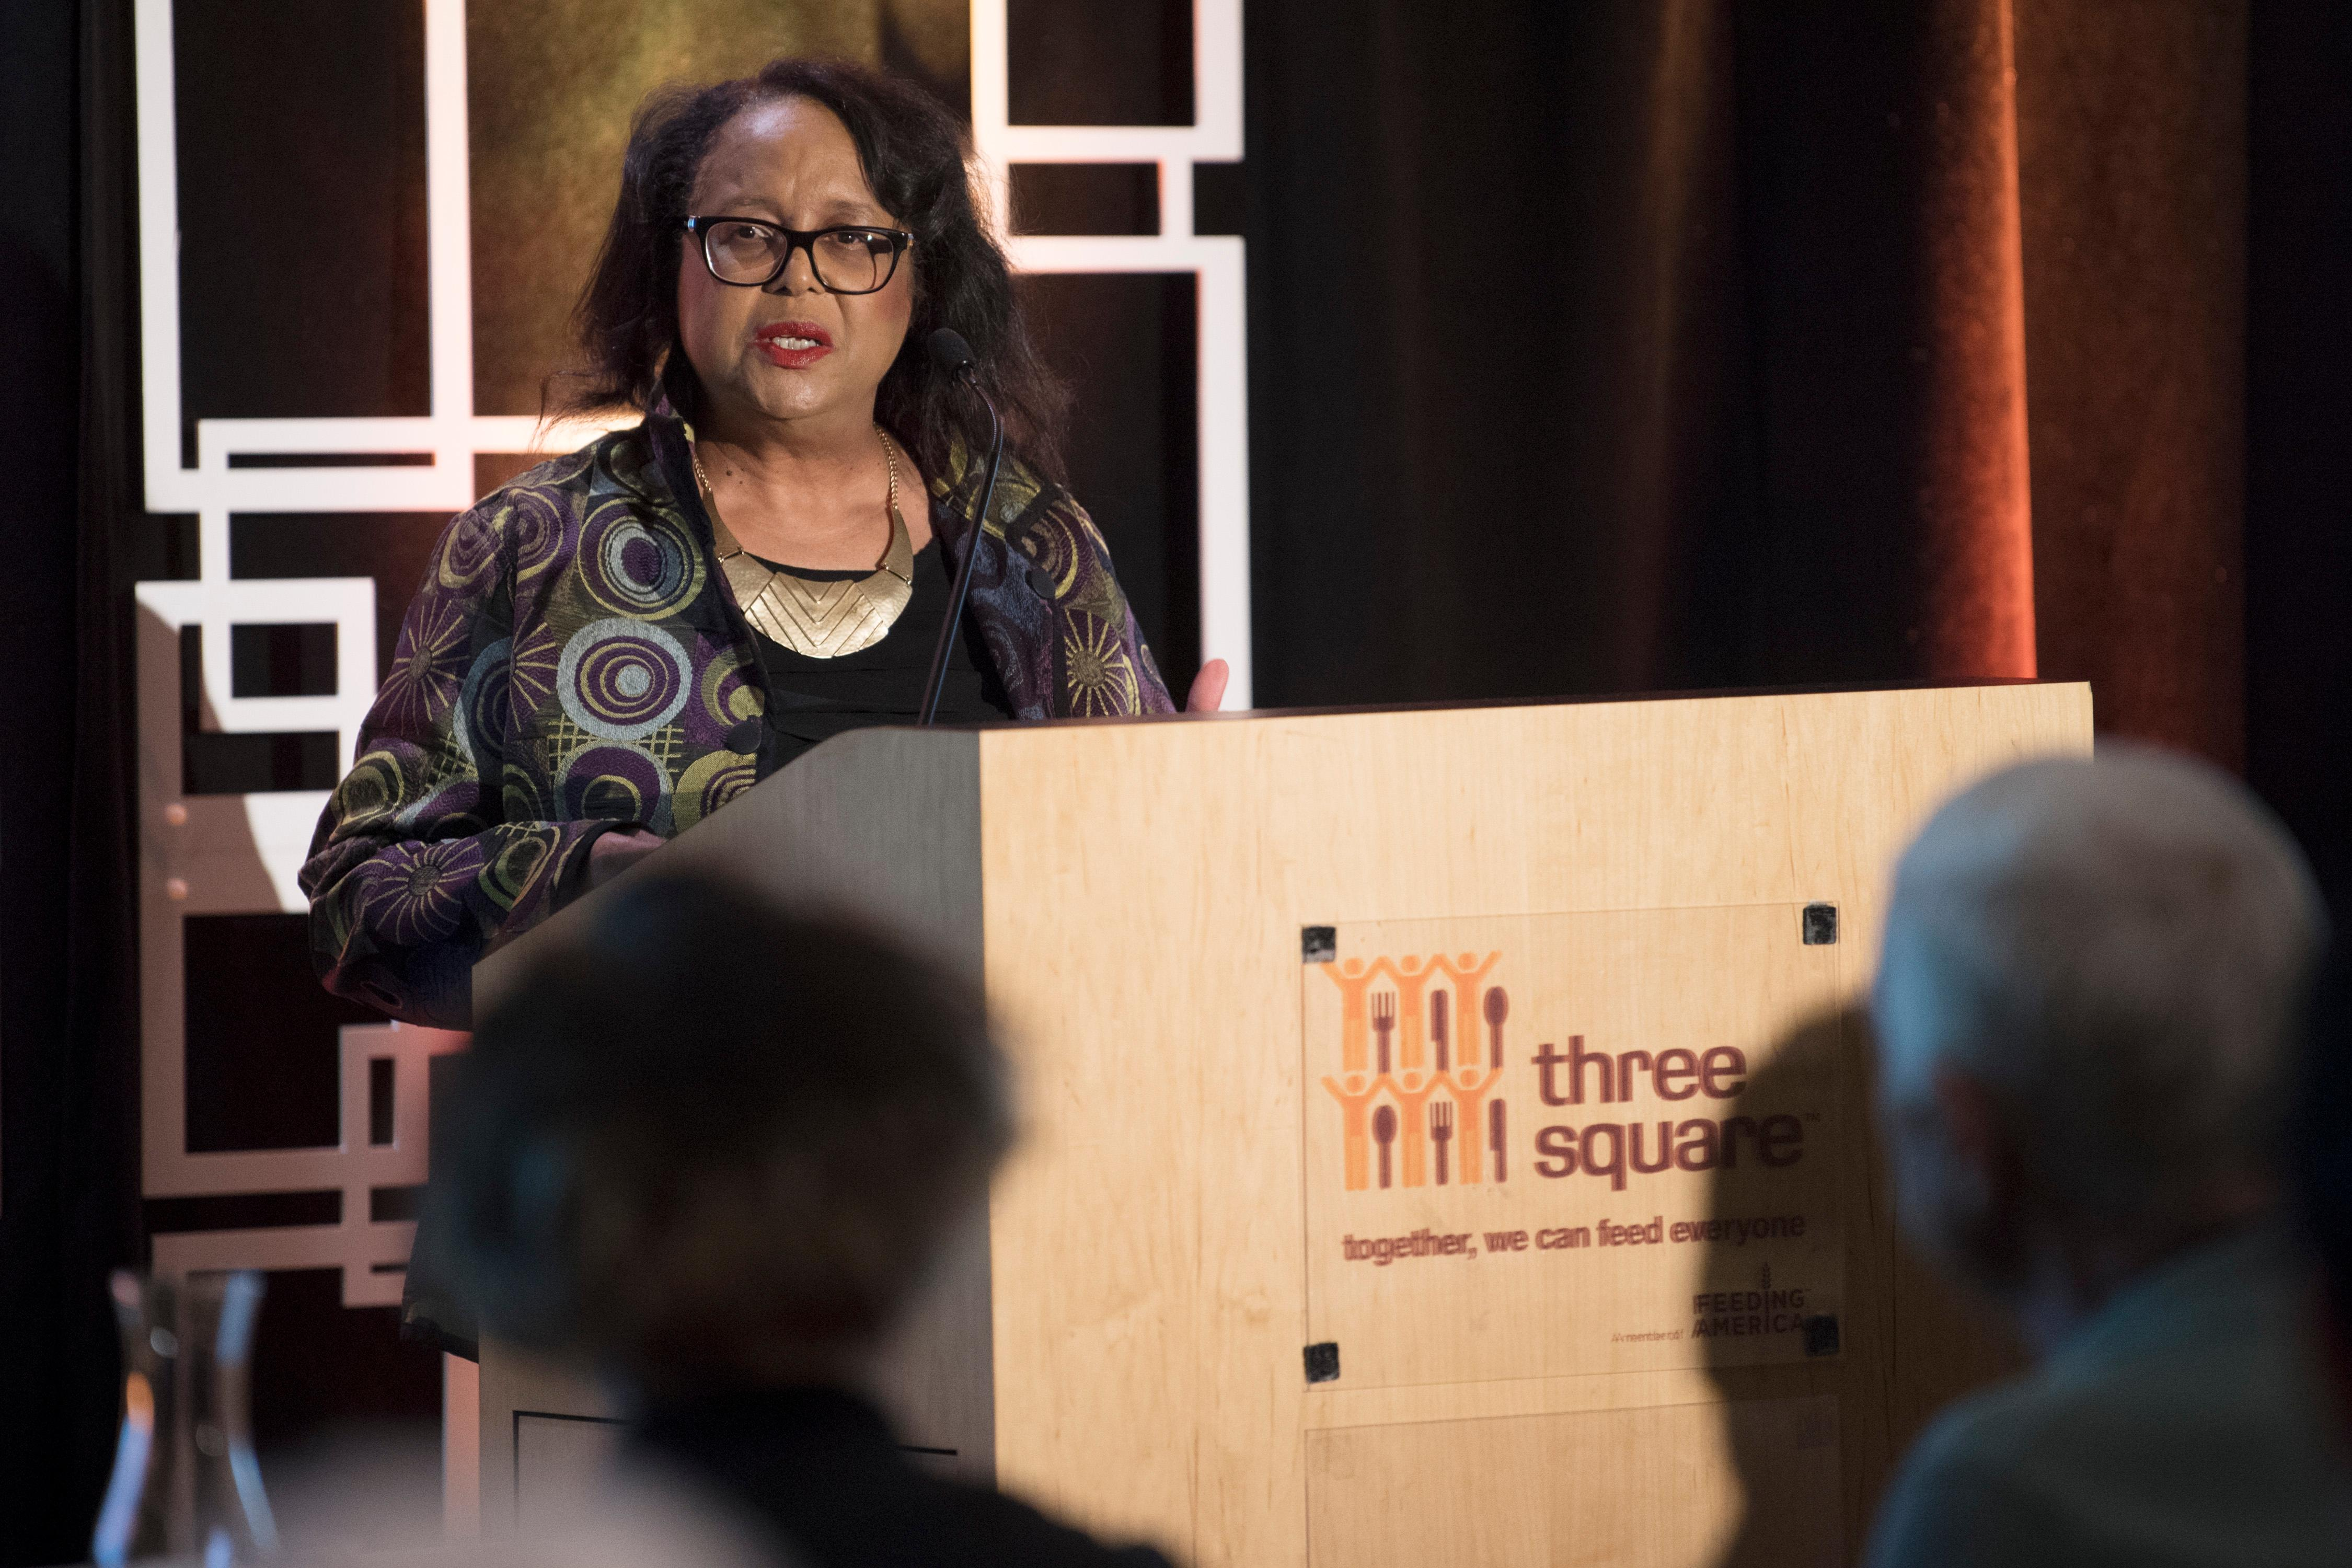 MGM Resorts International Executive Vice President and Chief Corporate Social Responsibility Officer Phyllis James speaks during an event announcing a partnership between MGM Resorts International and Three Square food bank to expand their surplus banquet food rescue program Wednesday, January 17, 2018. CREDIT: Sam Morris/Las Vegas News Bureau